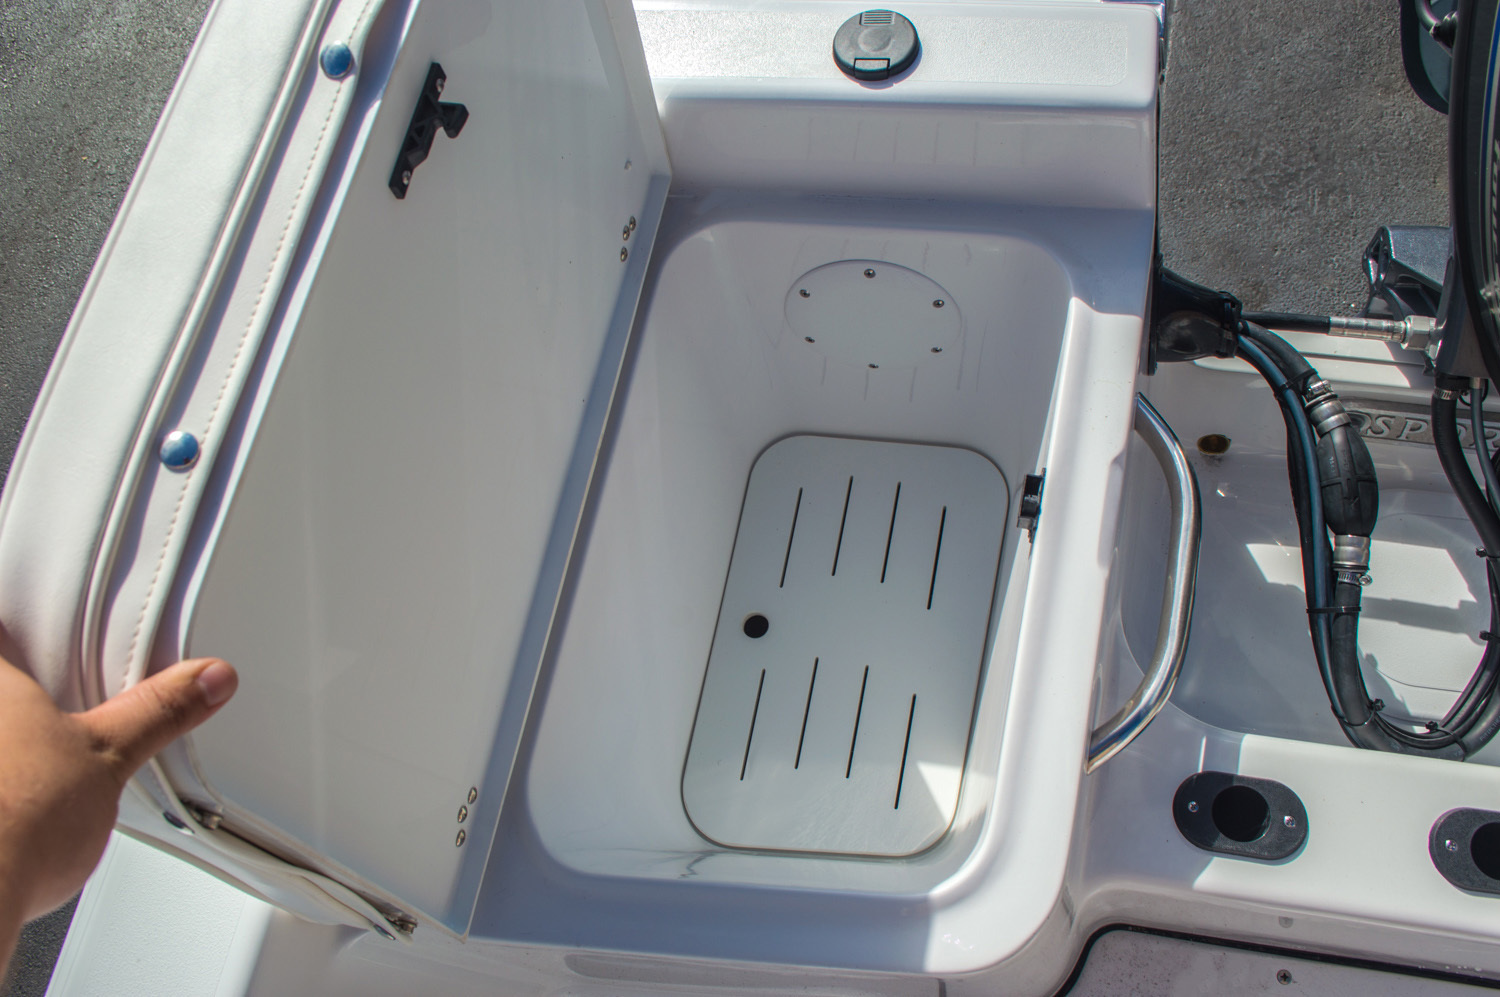 Thumbnail 18 for New 2016 Sportsman 17 Island Reef boat for sale in Vero Beach, FL